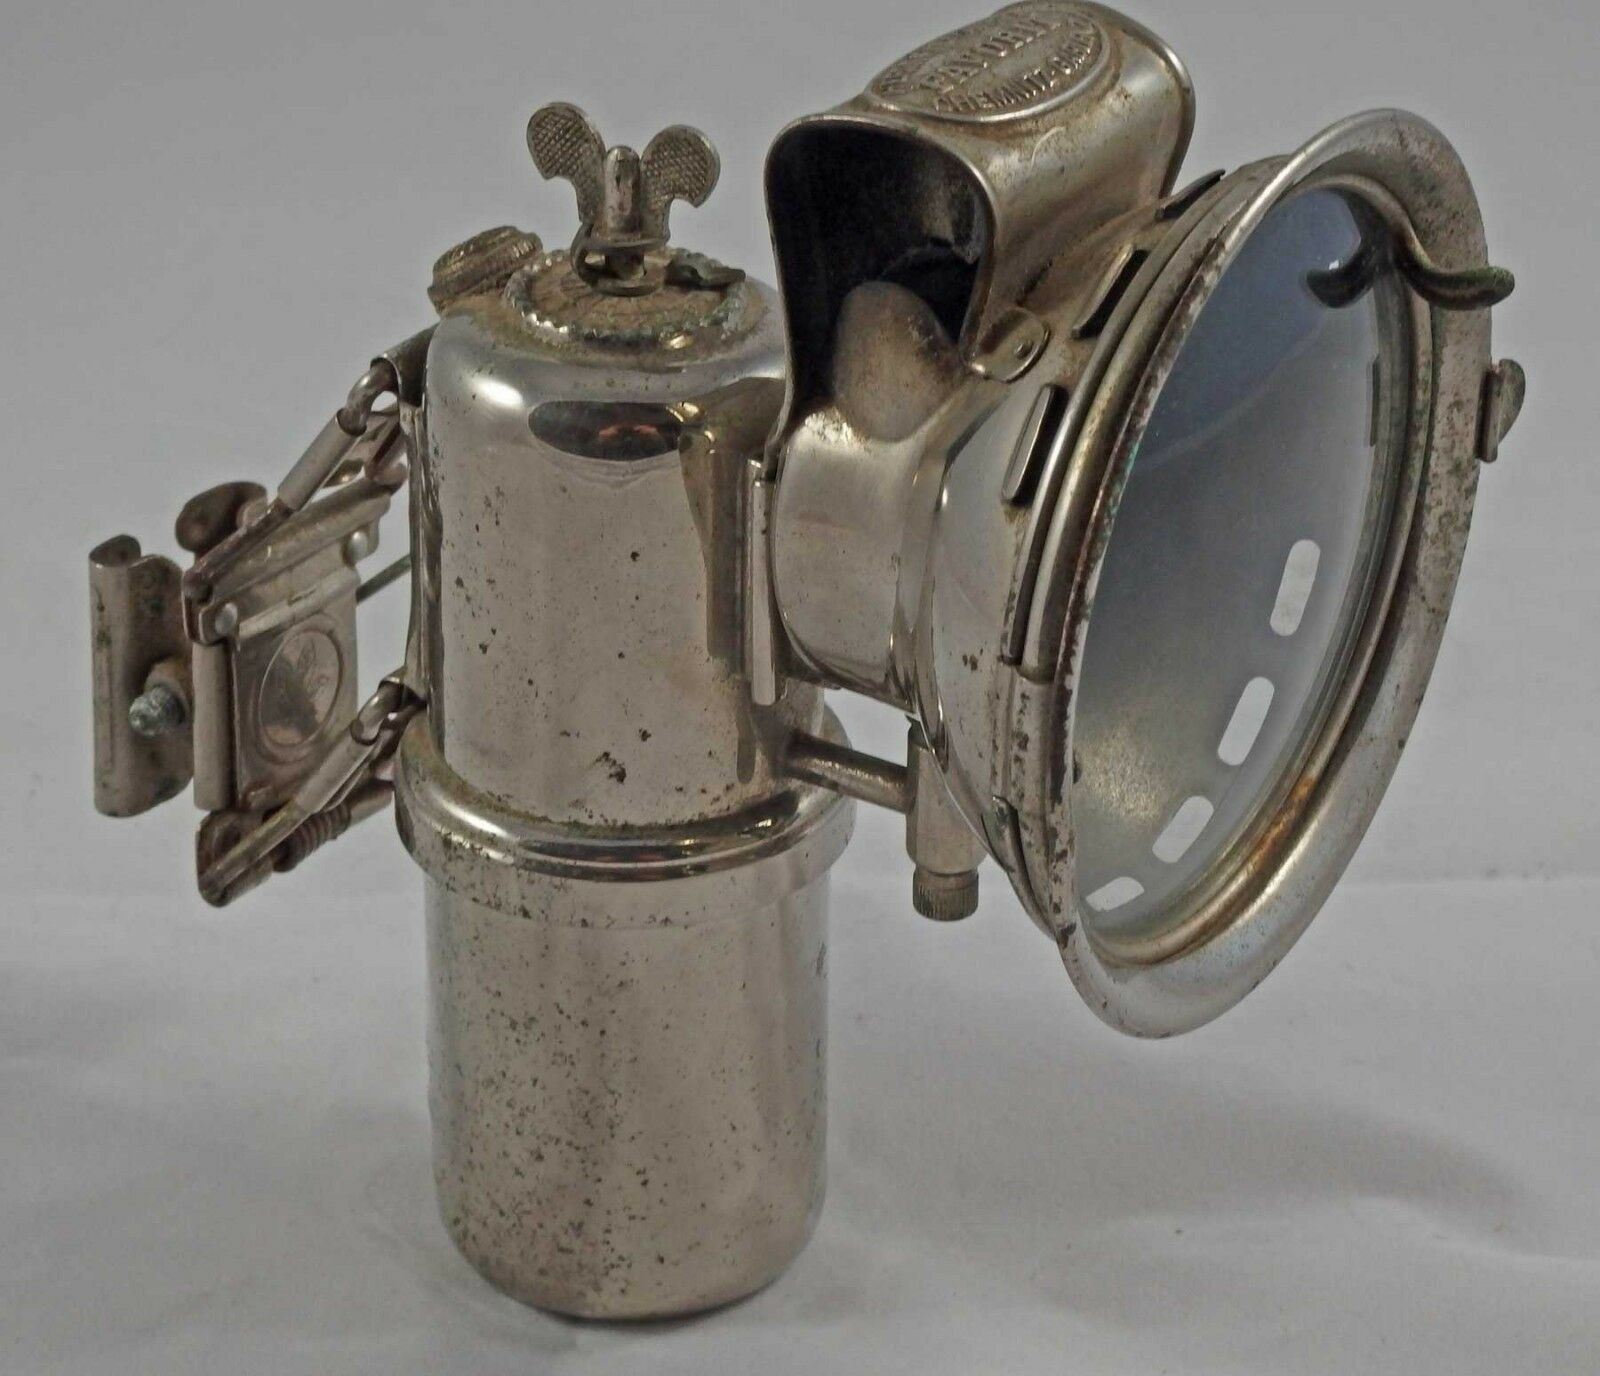 Carbide lamp carbide lamp-herm riemann's favorit-year 1910